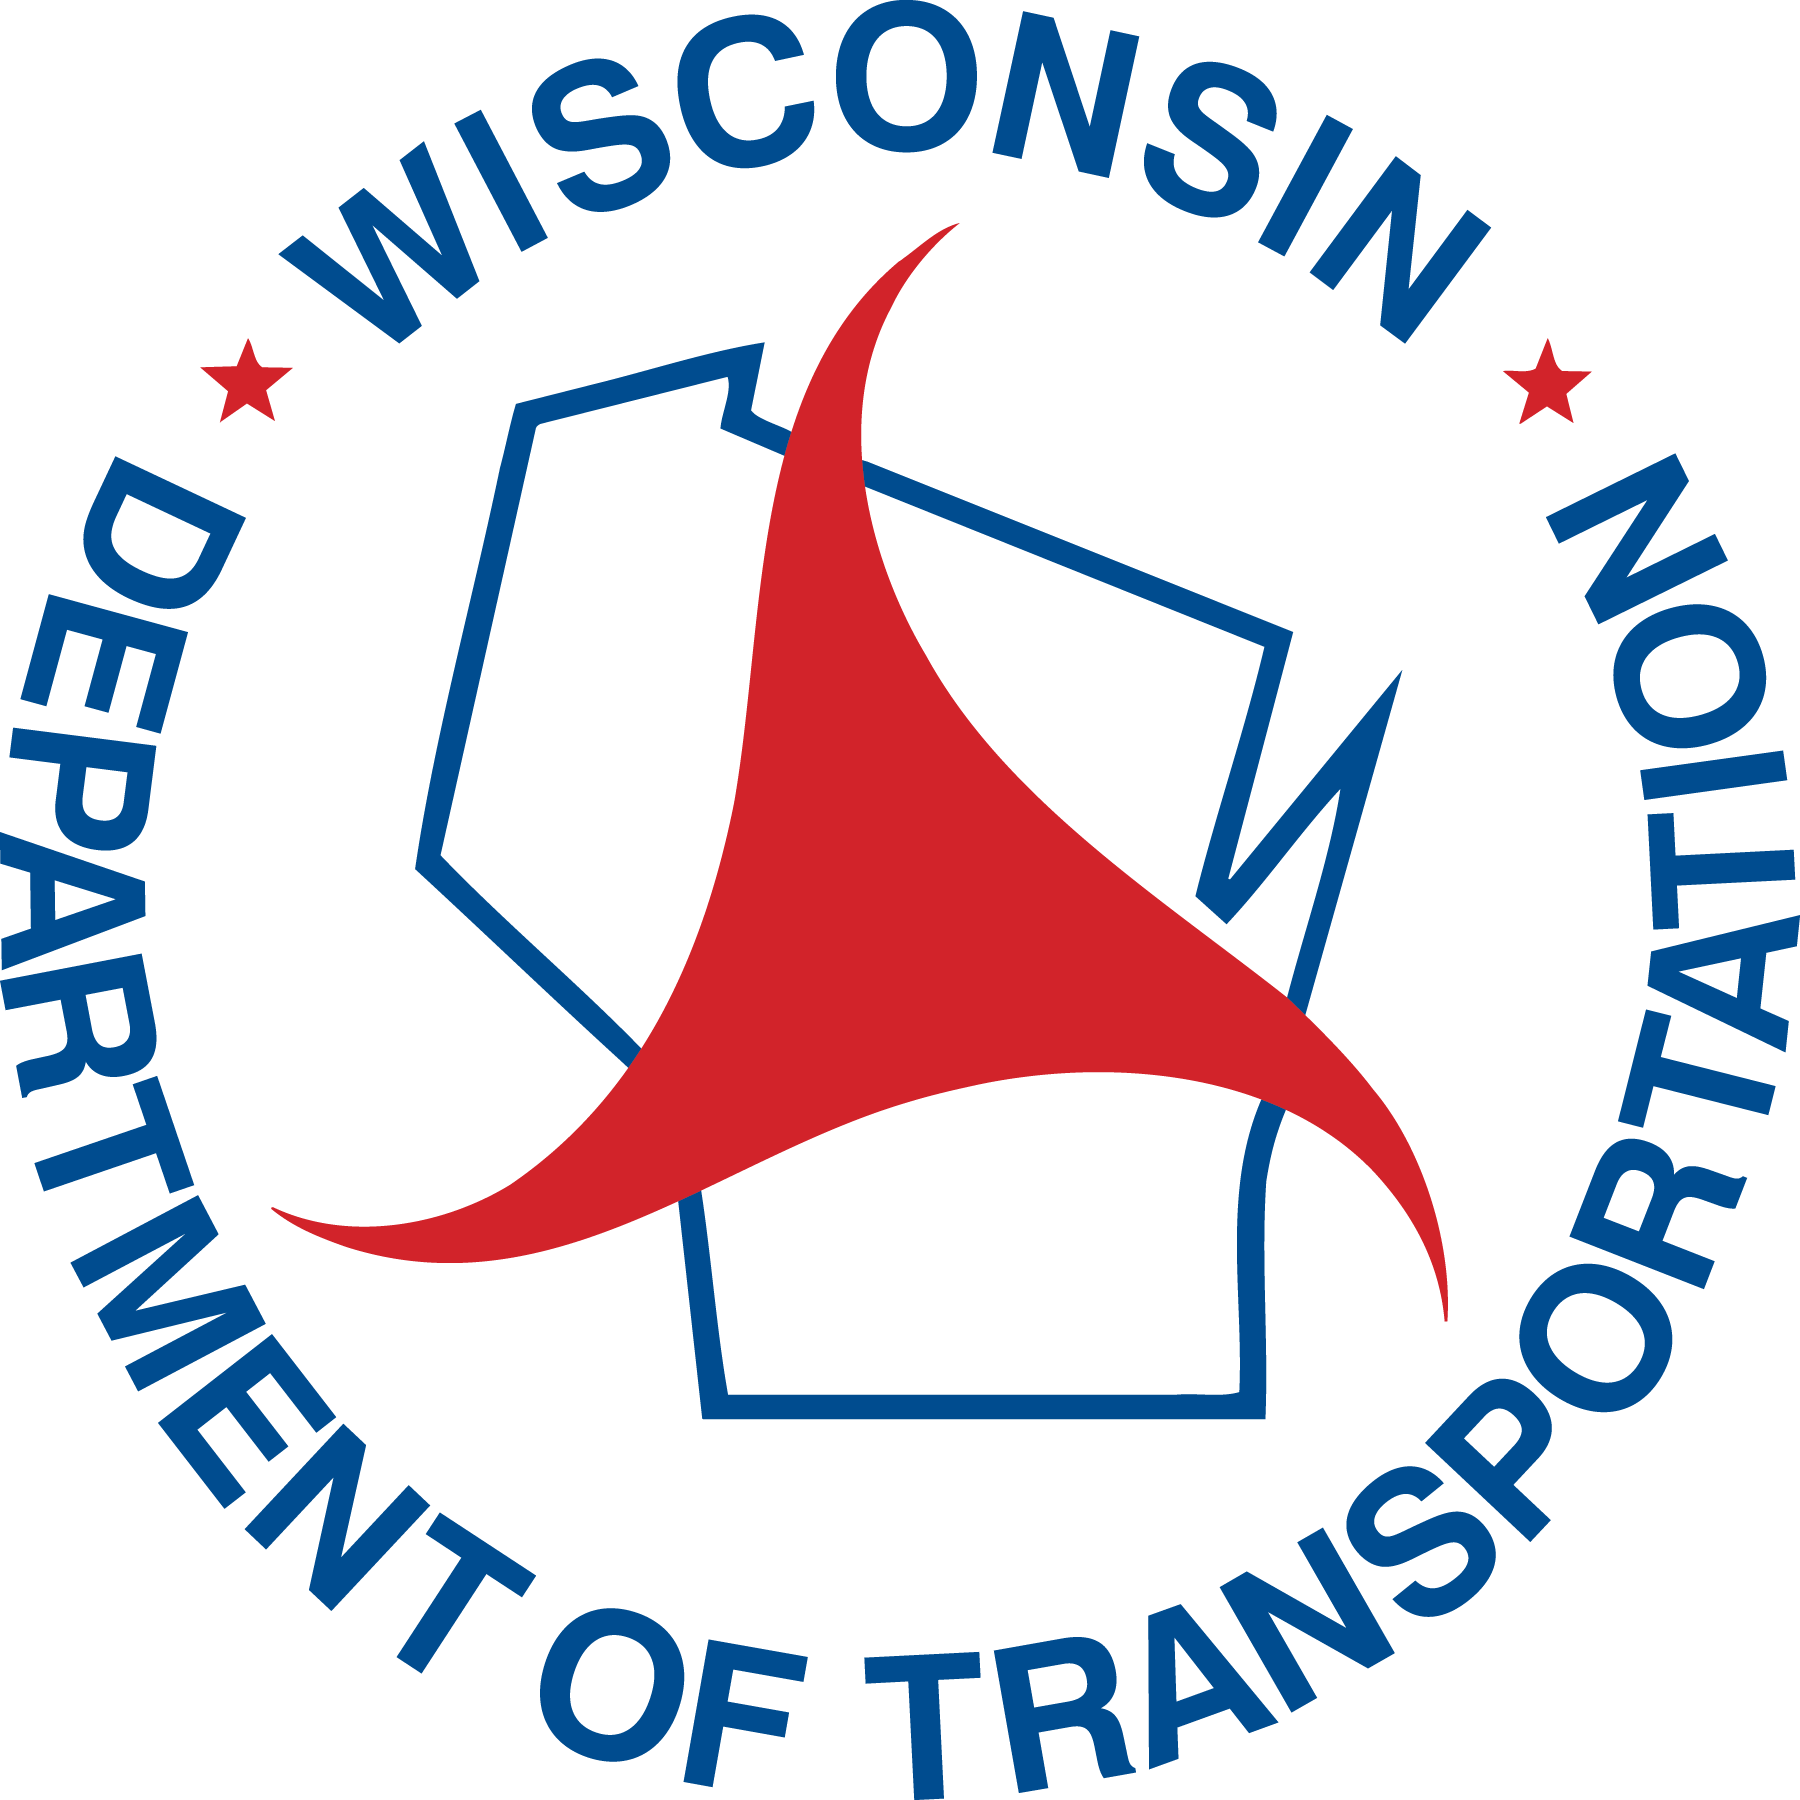 wisdot-agency-name-logo-red-blue-cmyk.png